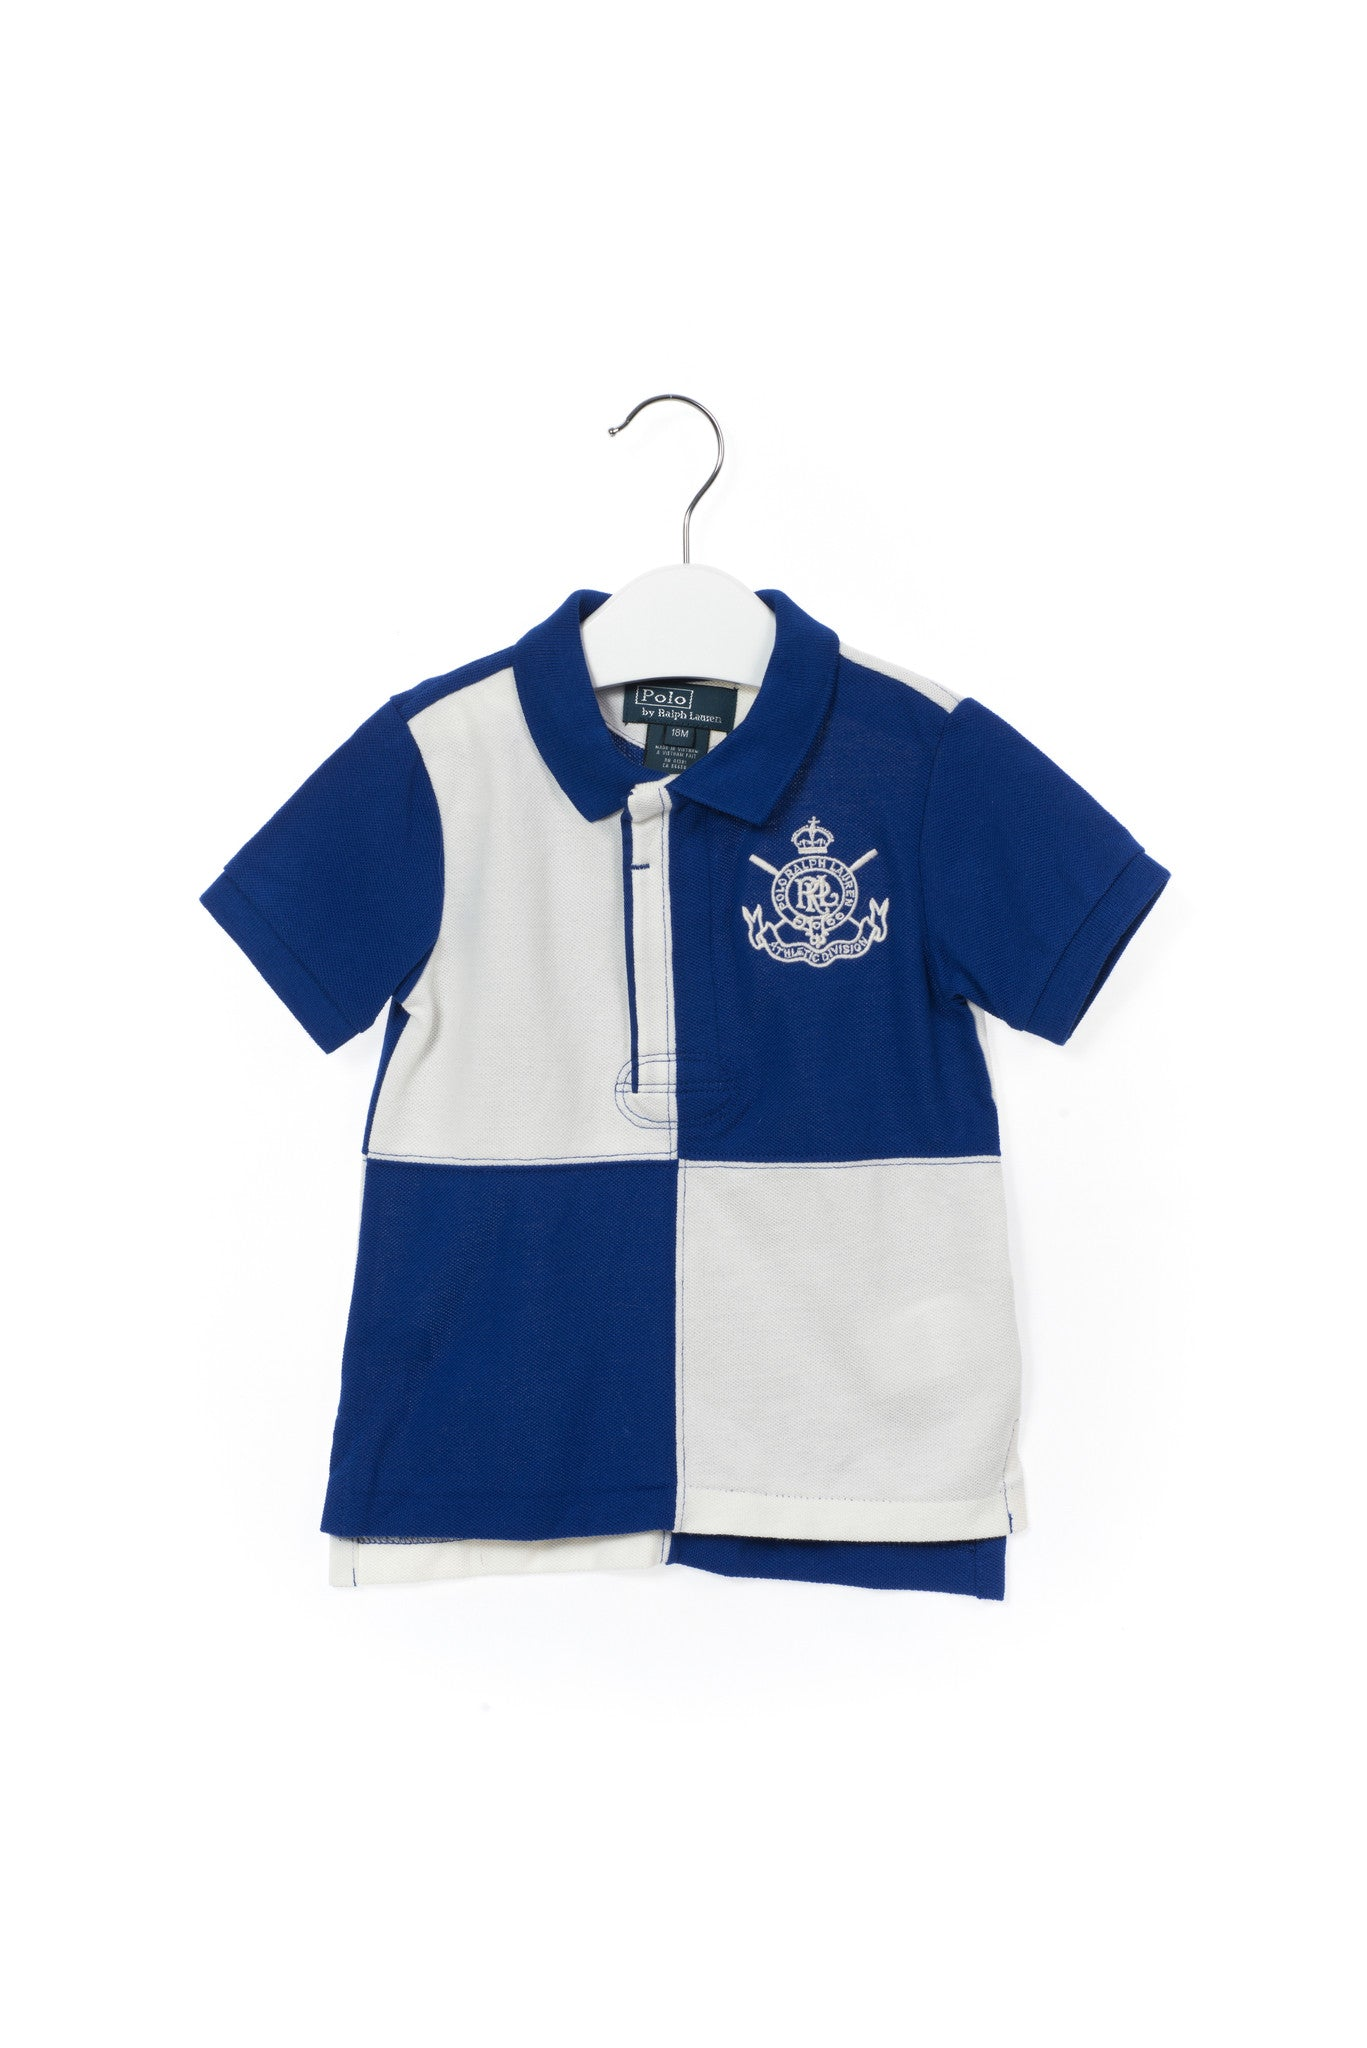 Polo 12-18M, Polo Ralph Lauren at Retykle - Online Baby & Kids Clothing Up to 90% Off